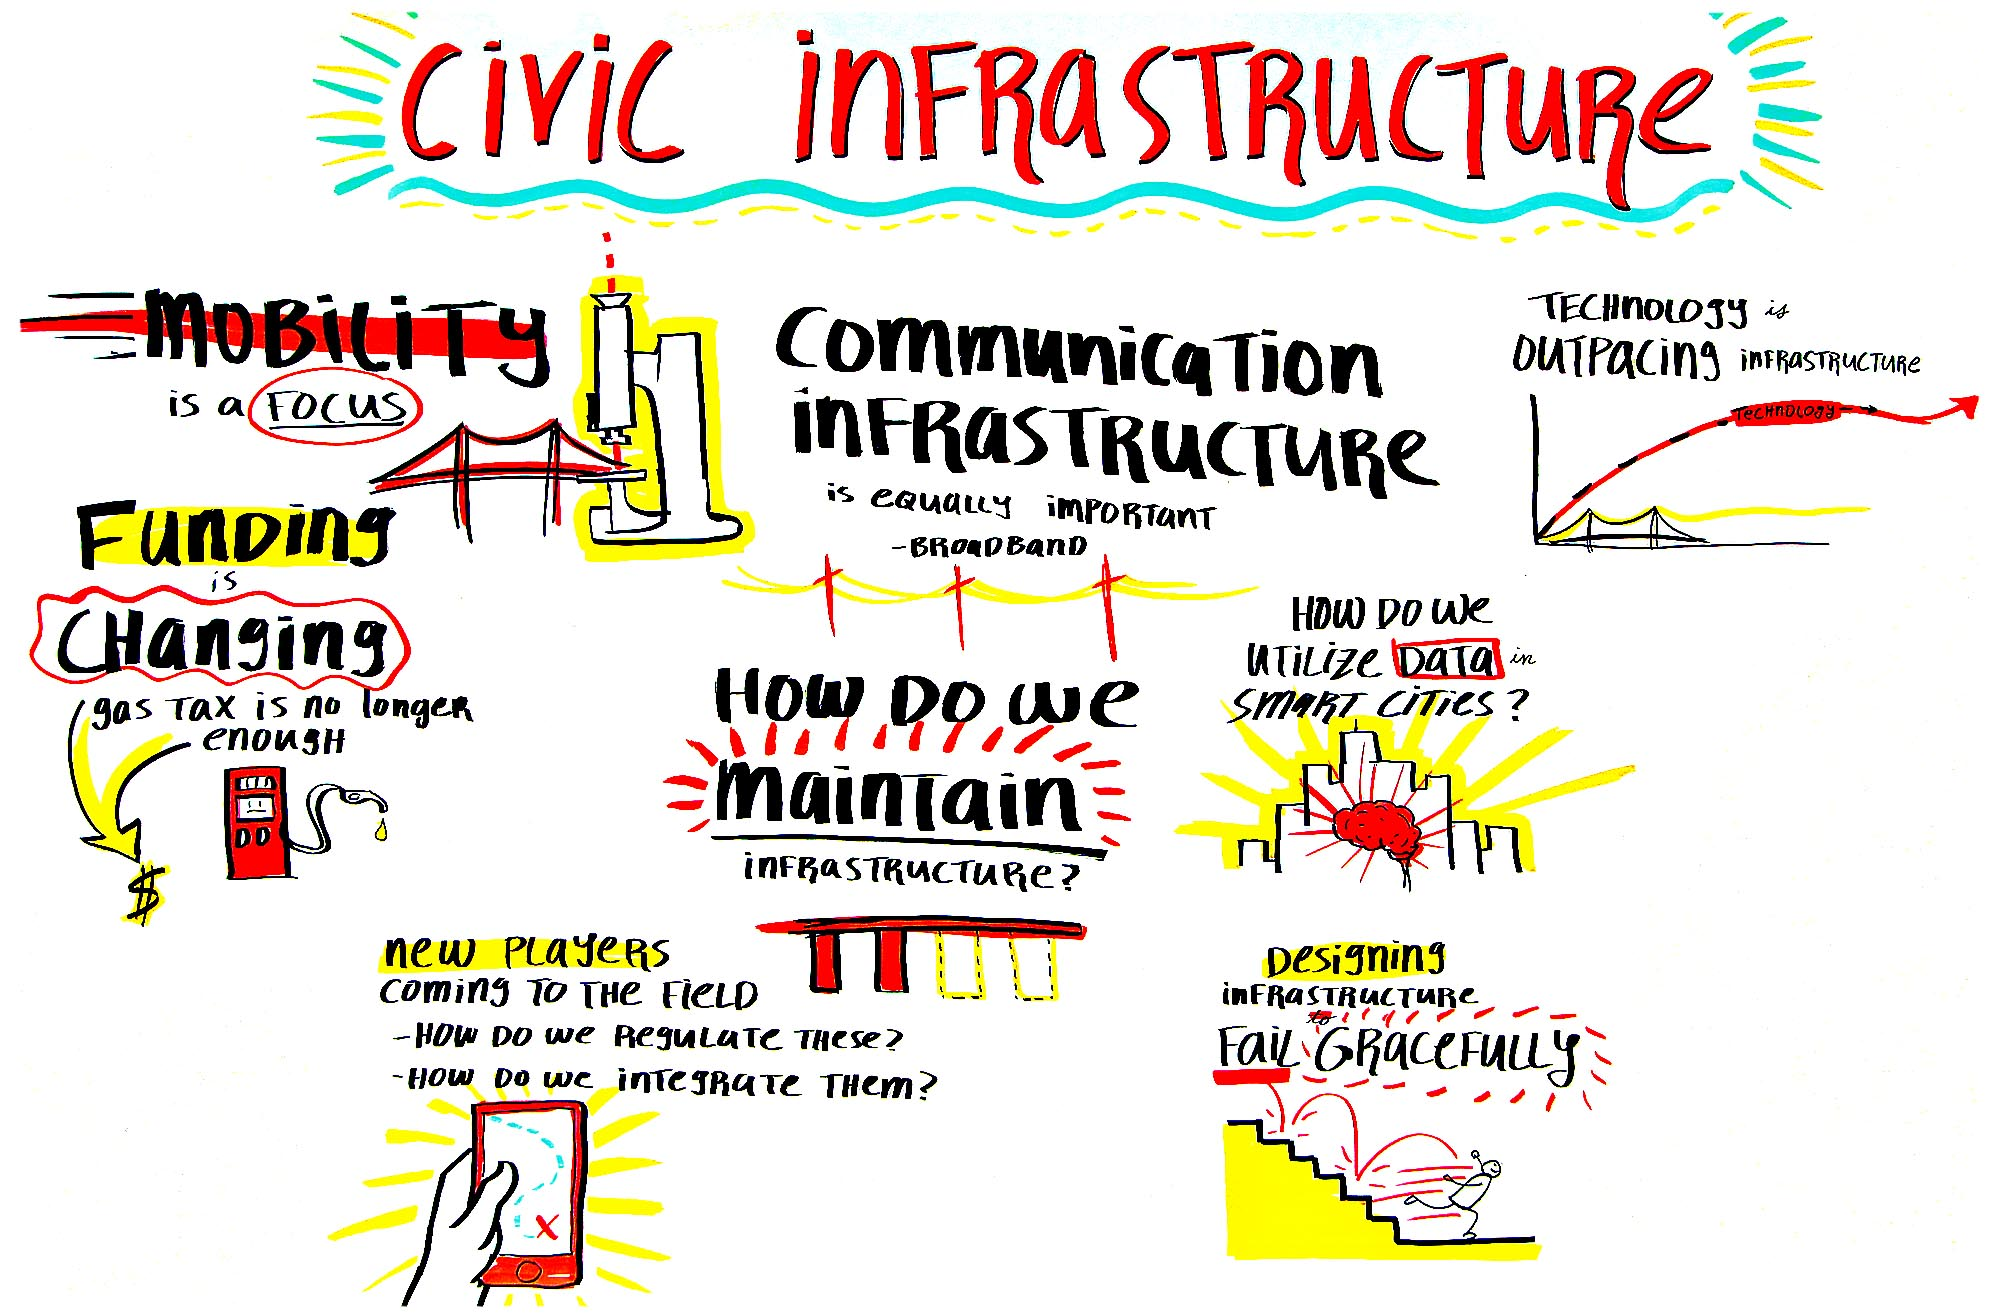 Civic Infrastructure - Scribing 1   Mayors Conference 2017